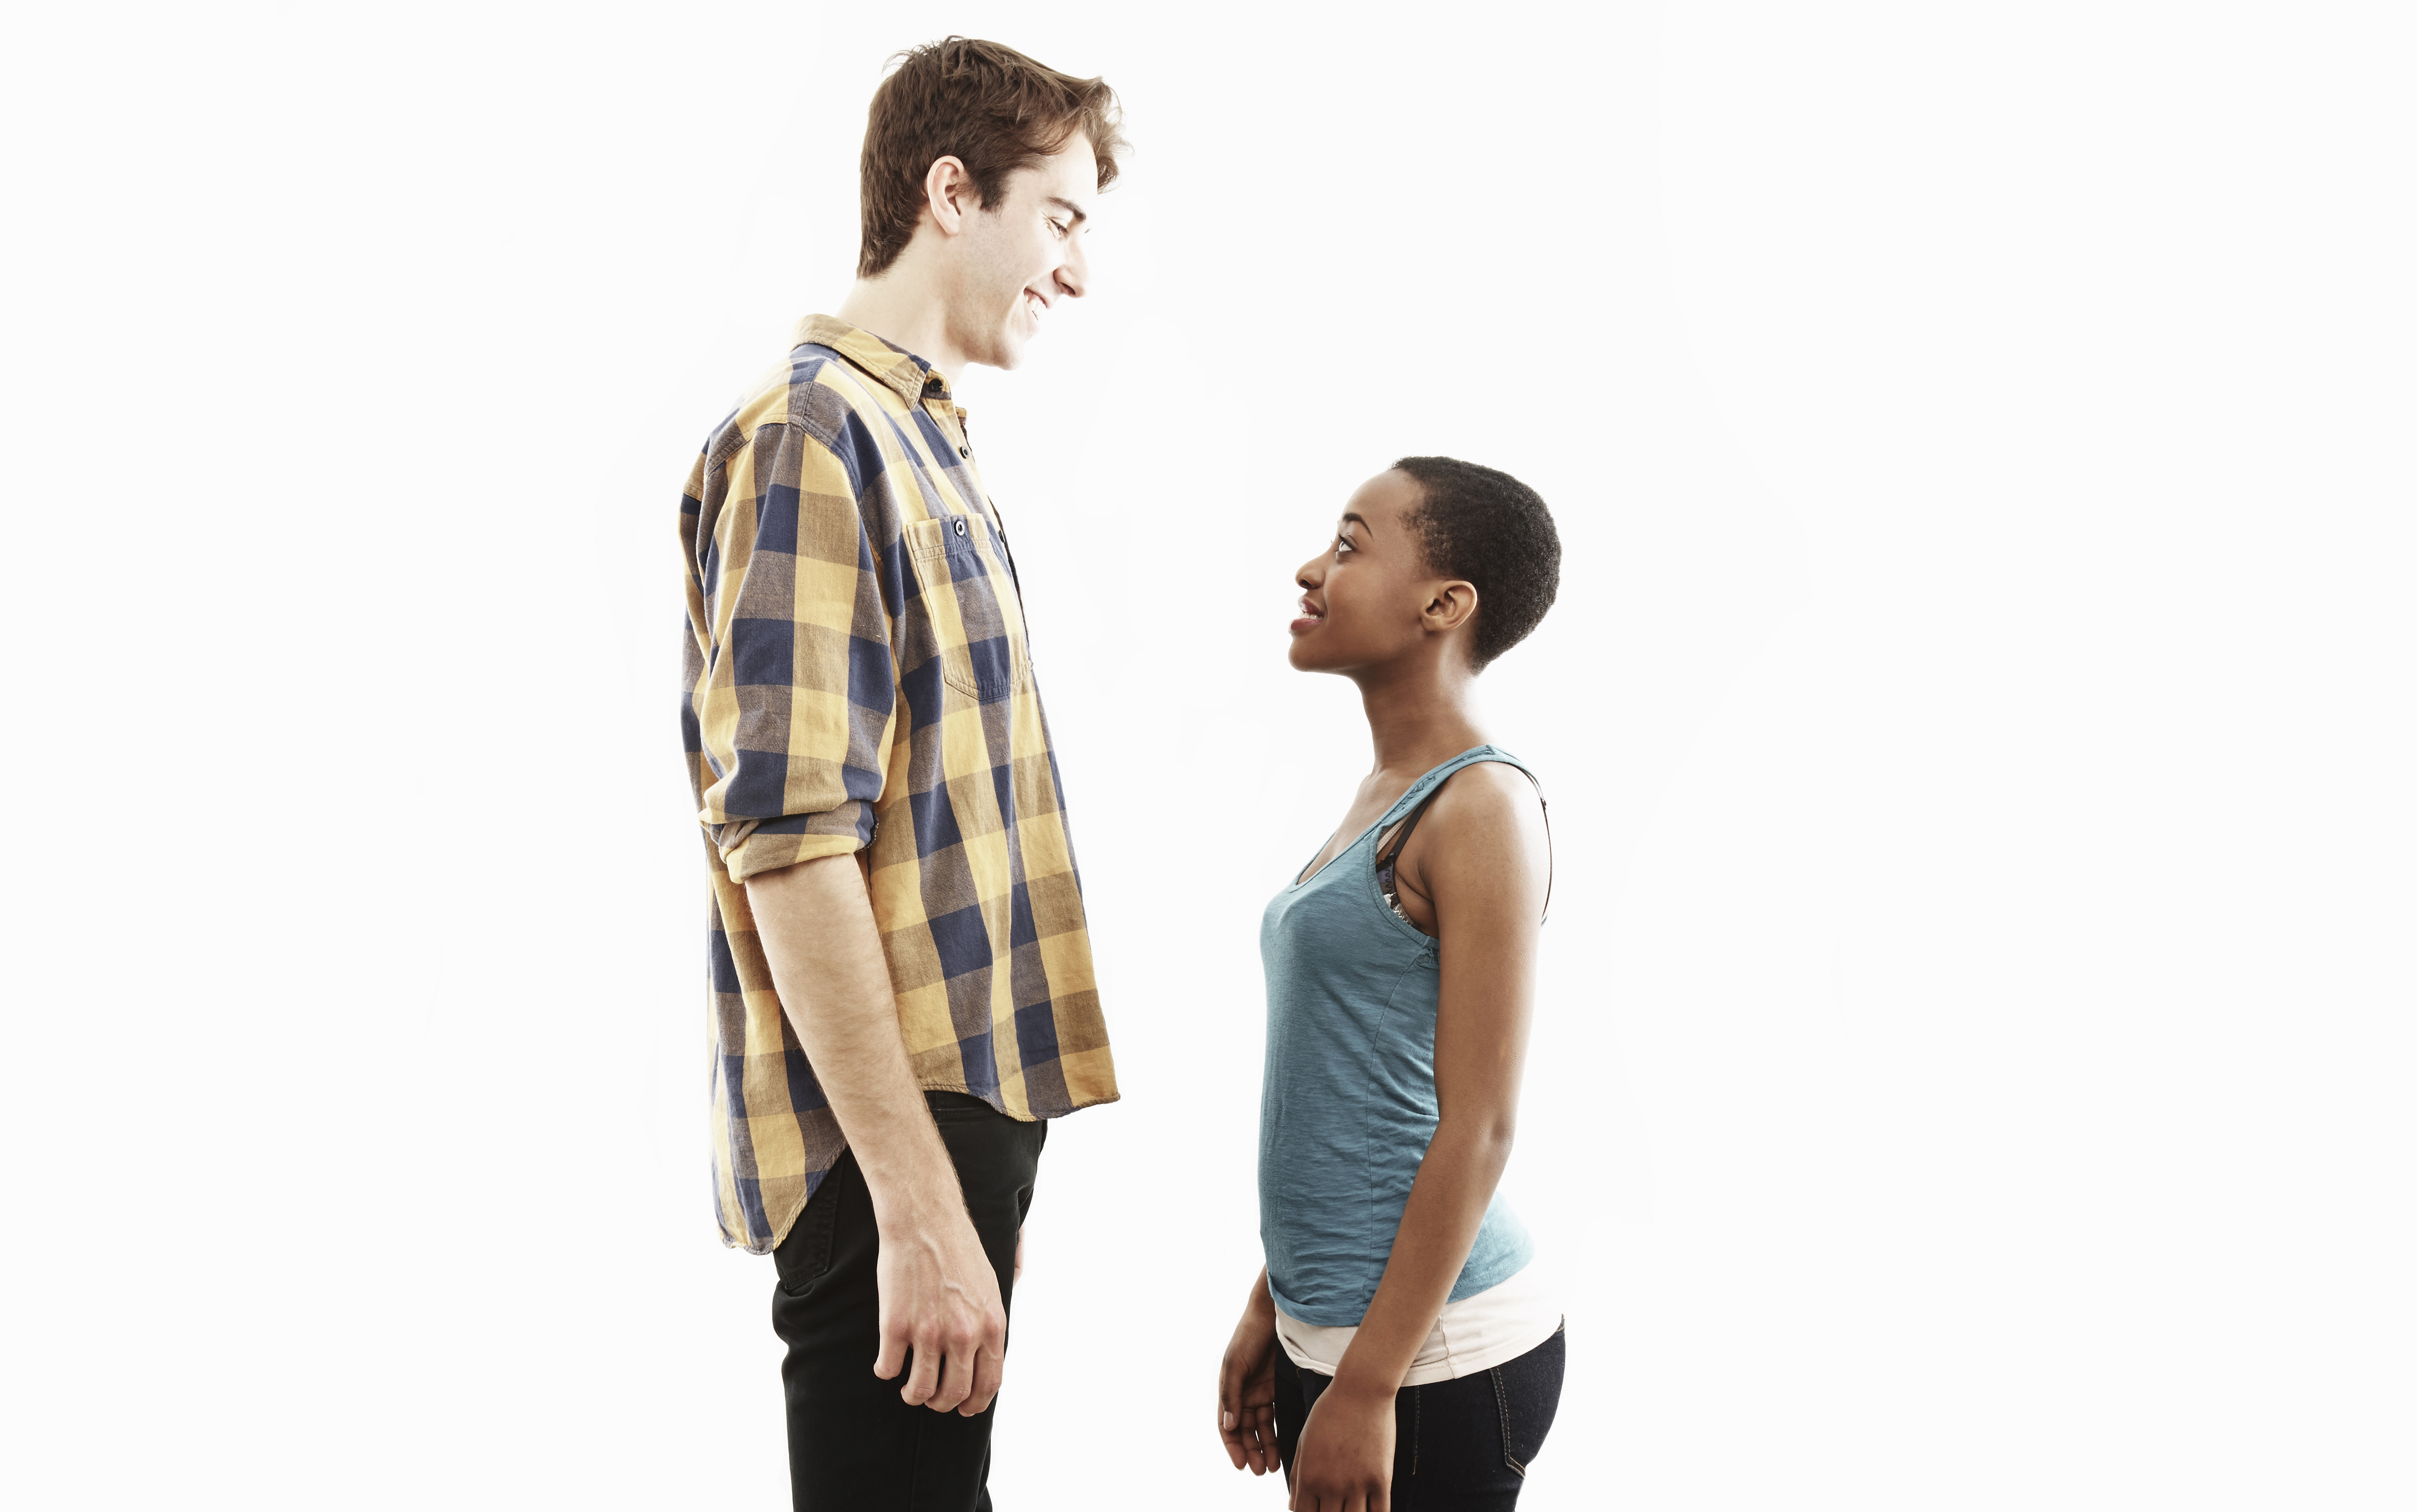 Women Married To Taller Men Really Are Happier Sheknows